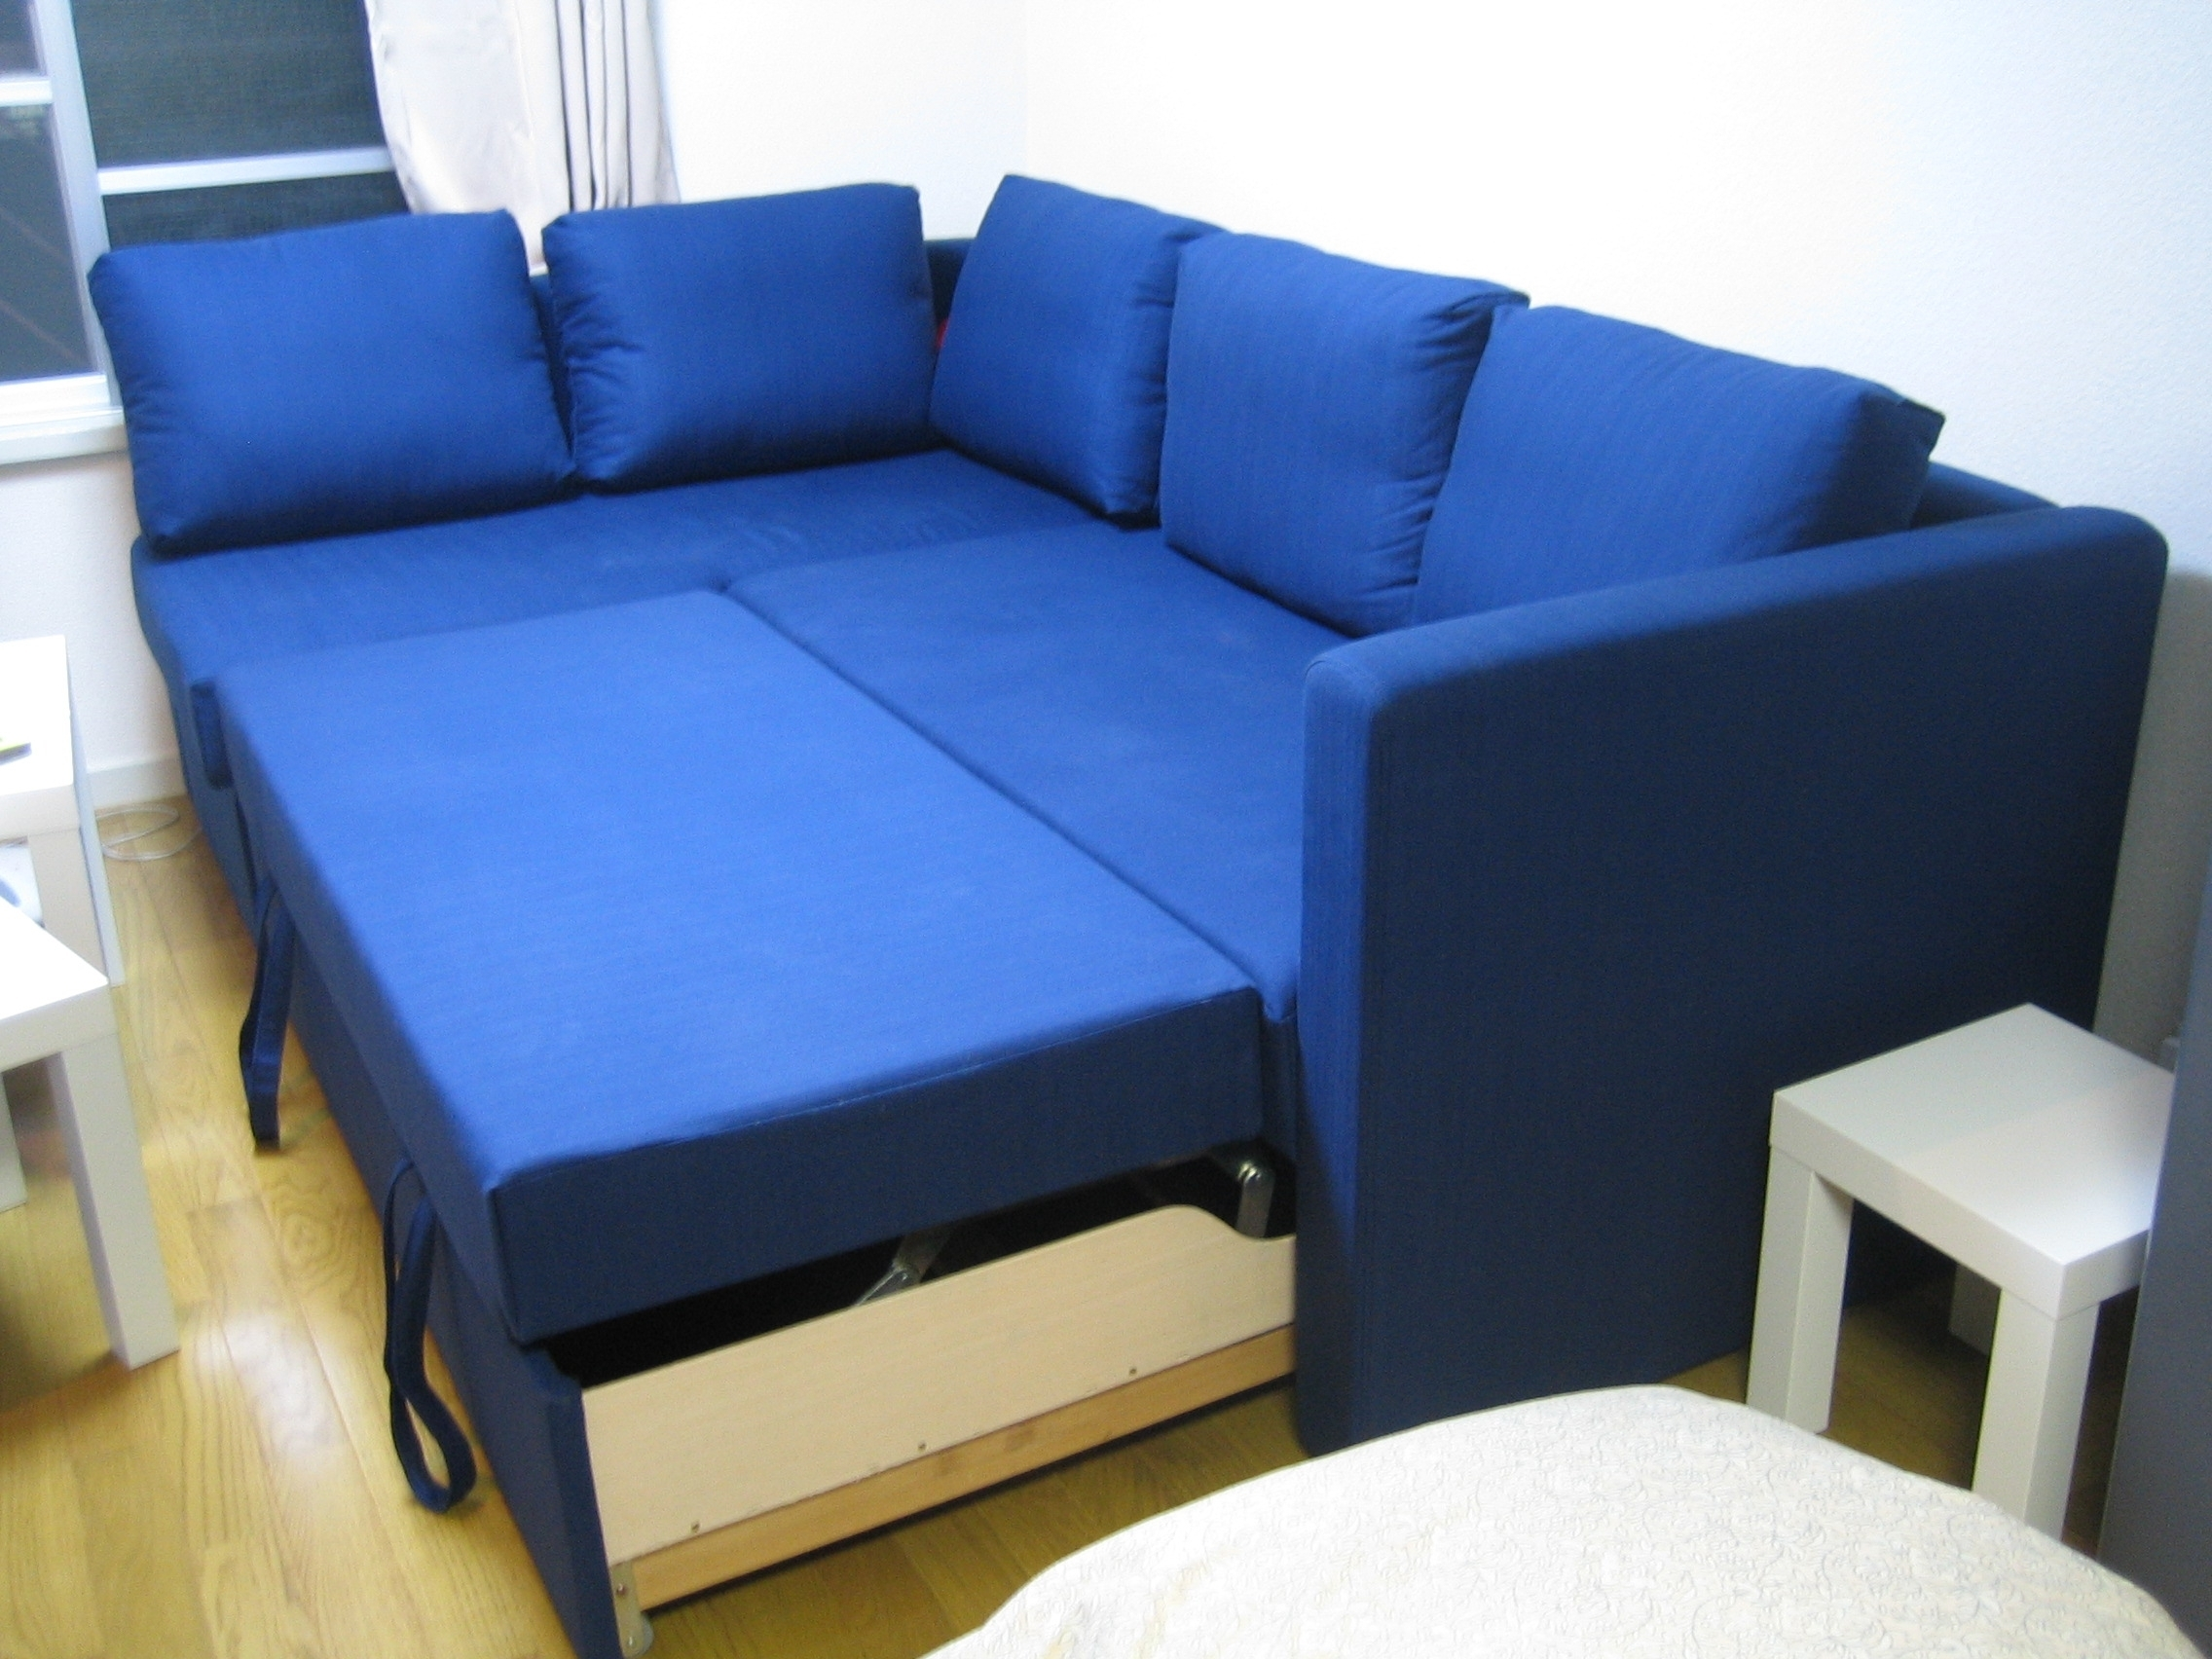 Sectional Sofa That Turns Into A Bed • Sofa Bed Intended For Sectional Sofas That Turn Into Beds (View 9 of 10)